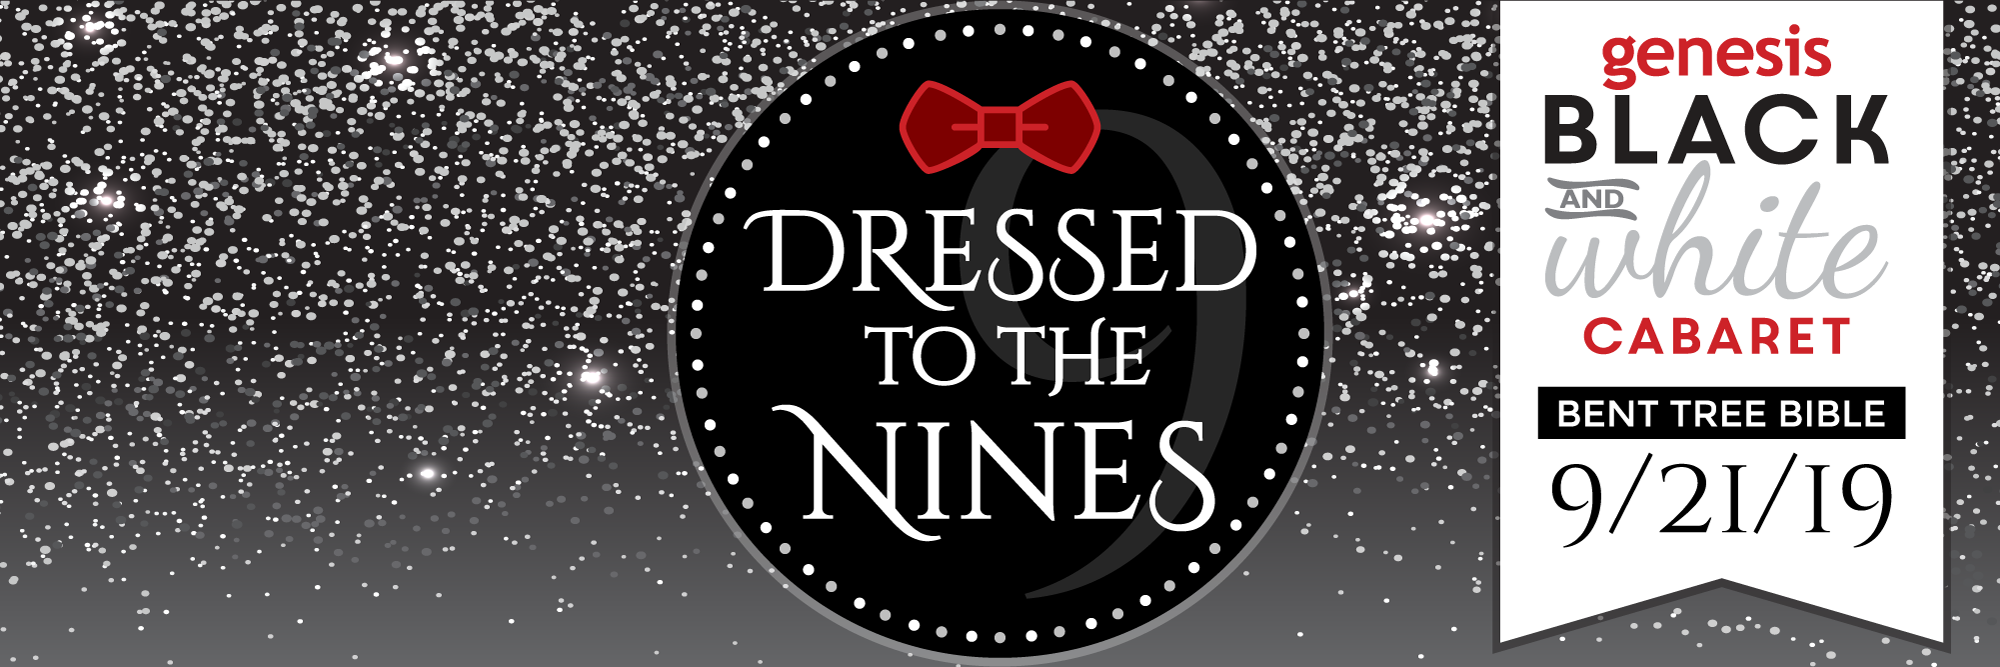 Dressed to the Nines